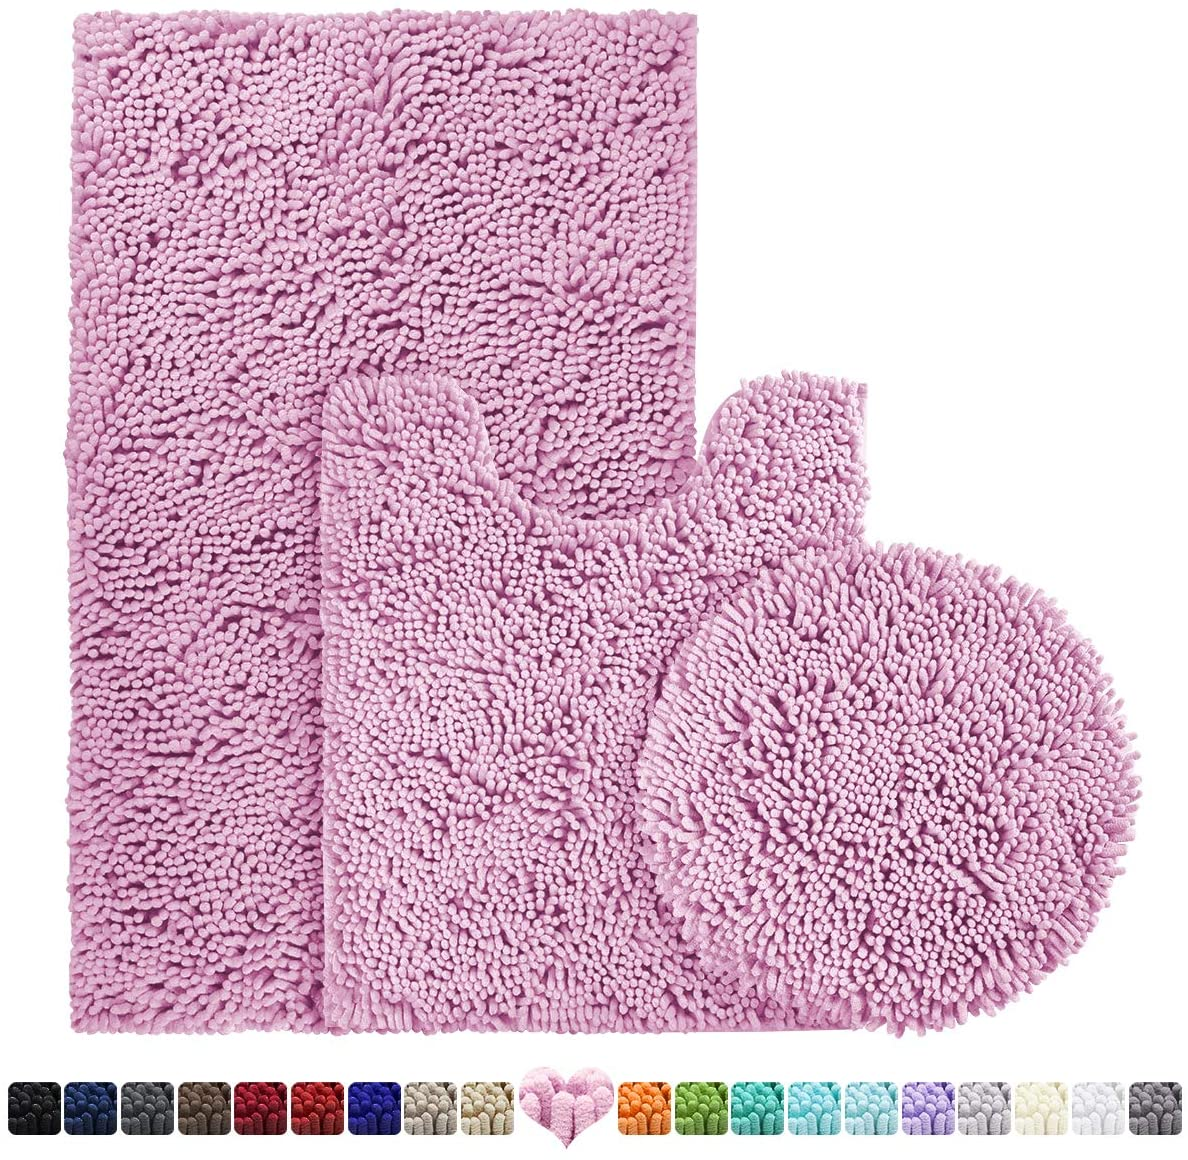 BYSURE Pink Bathroom Rug Set 3 Piece, Bath Rugs Toilet Rugs U Shaped, Extra Absorbent Shaggy Chenille Bathroom Rugs Soft & Dry Bathroom Rug Set and Mats Sets Non Slip Washable Bath Rugs